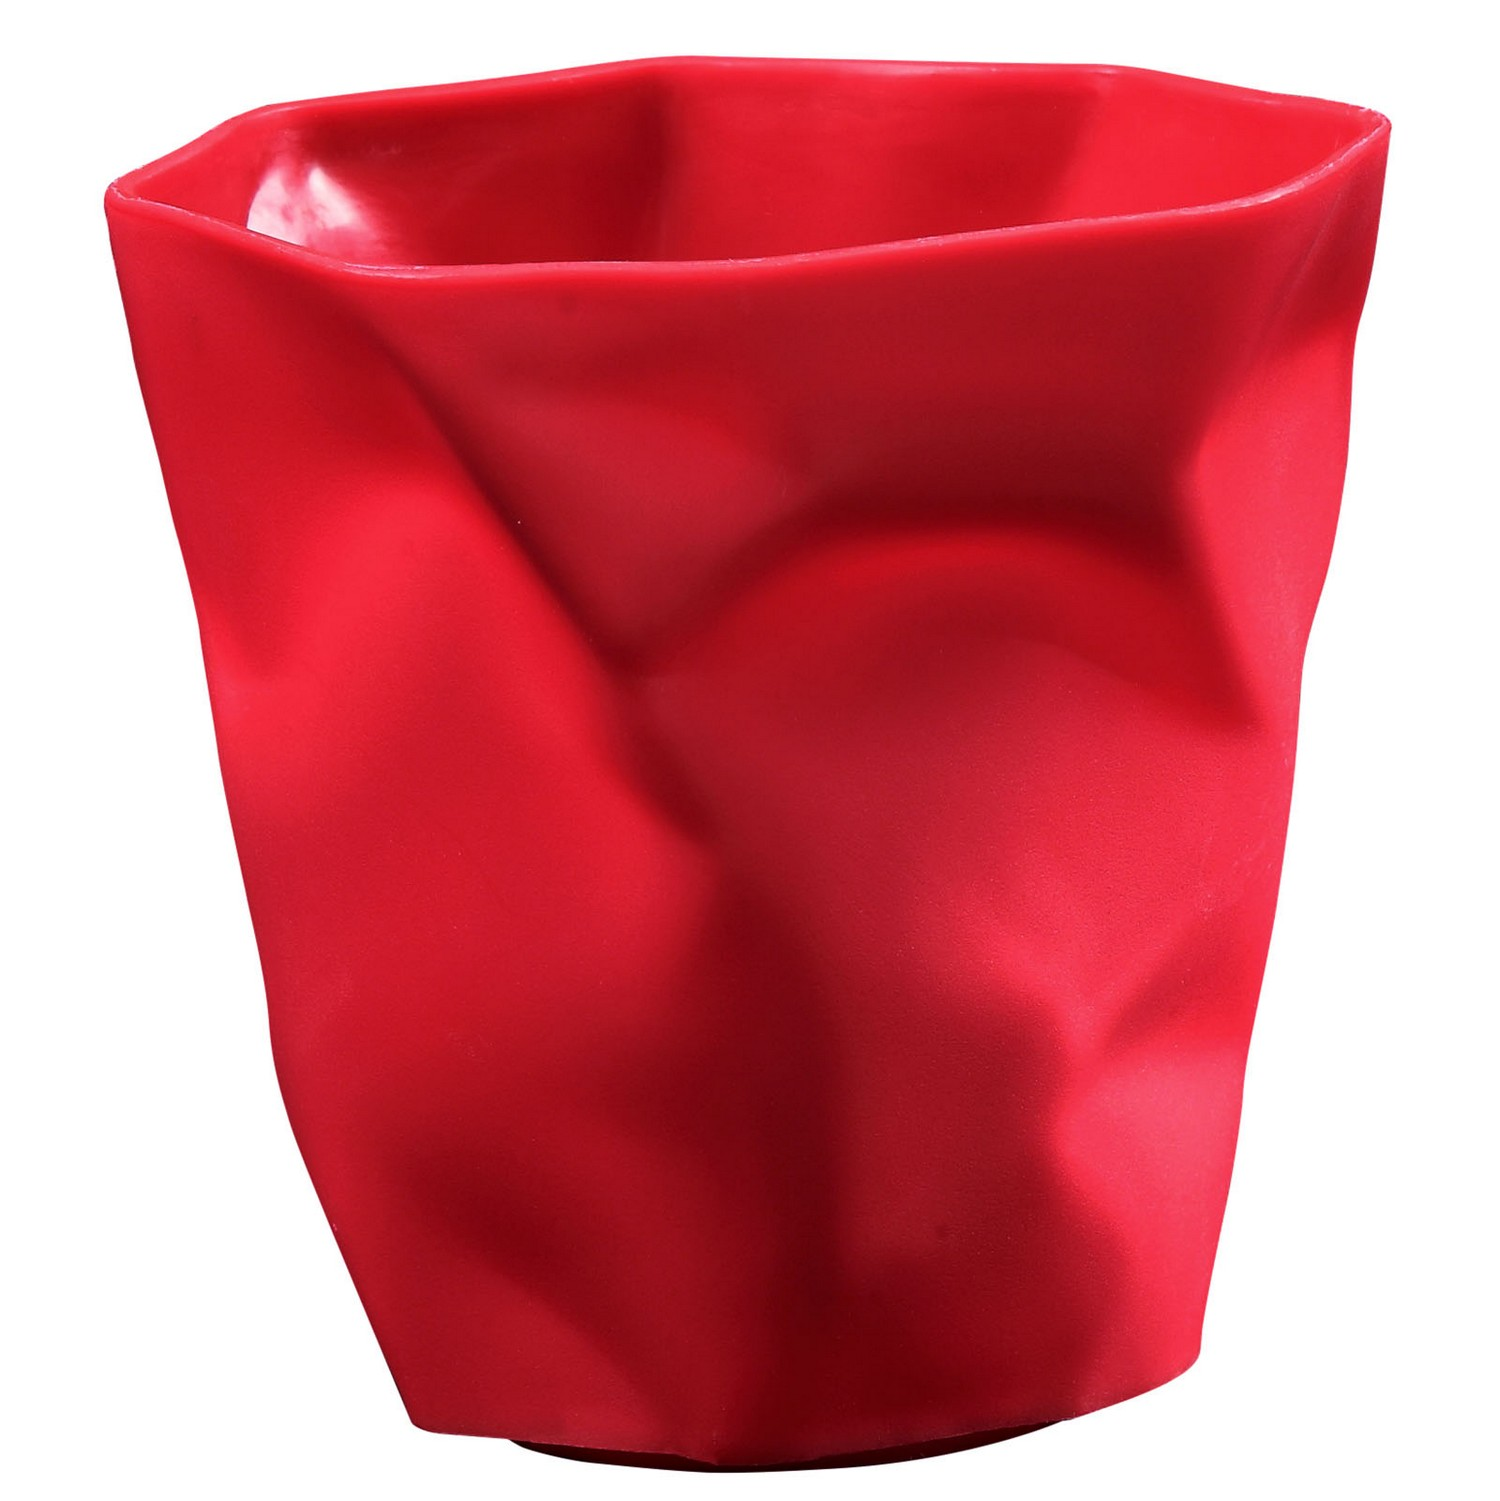 Modway Lava Pencil Holder - Red